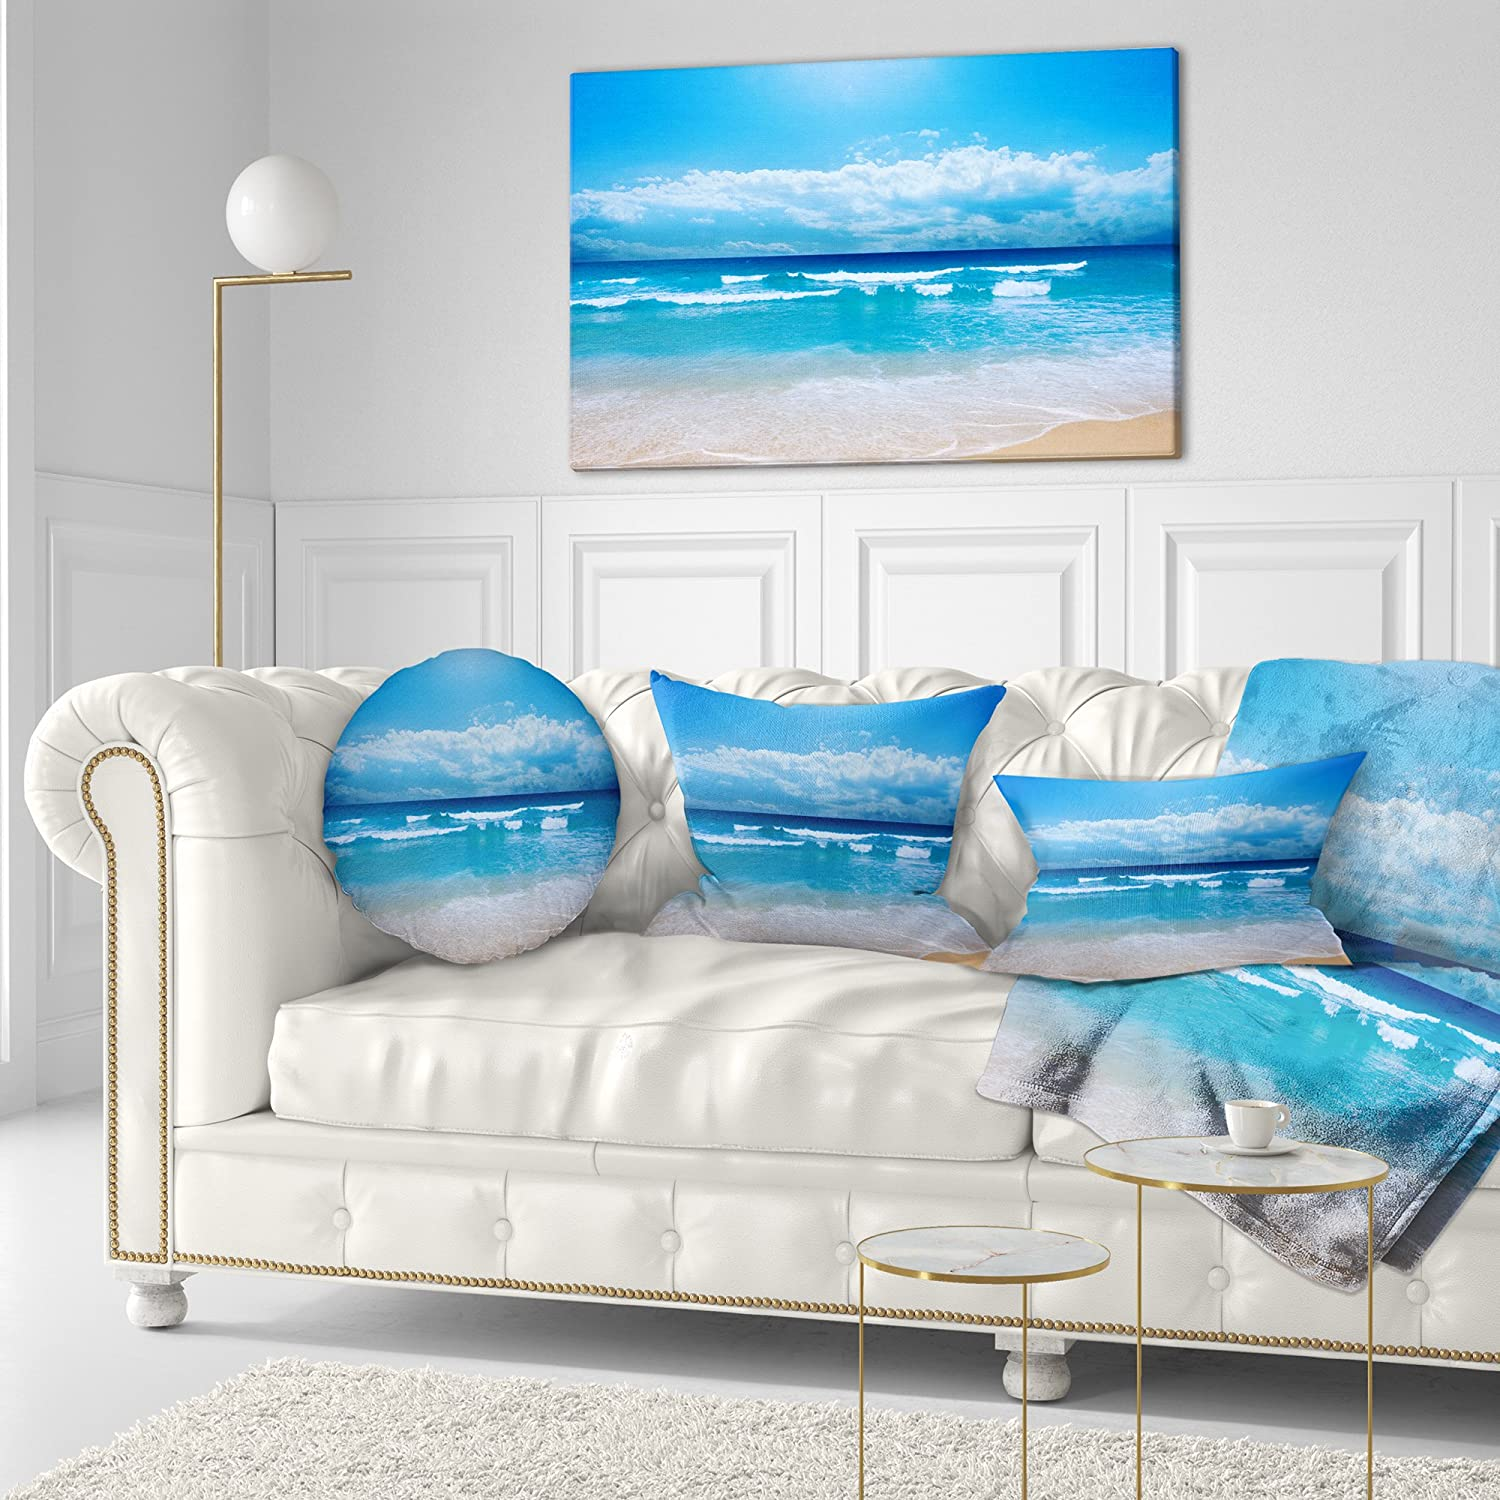 Wondrous Designart Cu6808 12 20 Paradise Beach Seascape Photography Ibusinesslaw Wood Chair Design Ideas Ibusinesslaworg